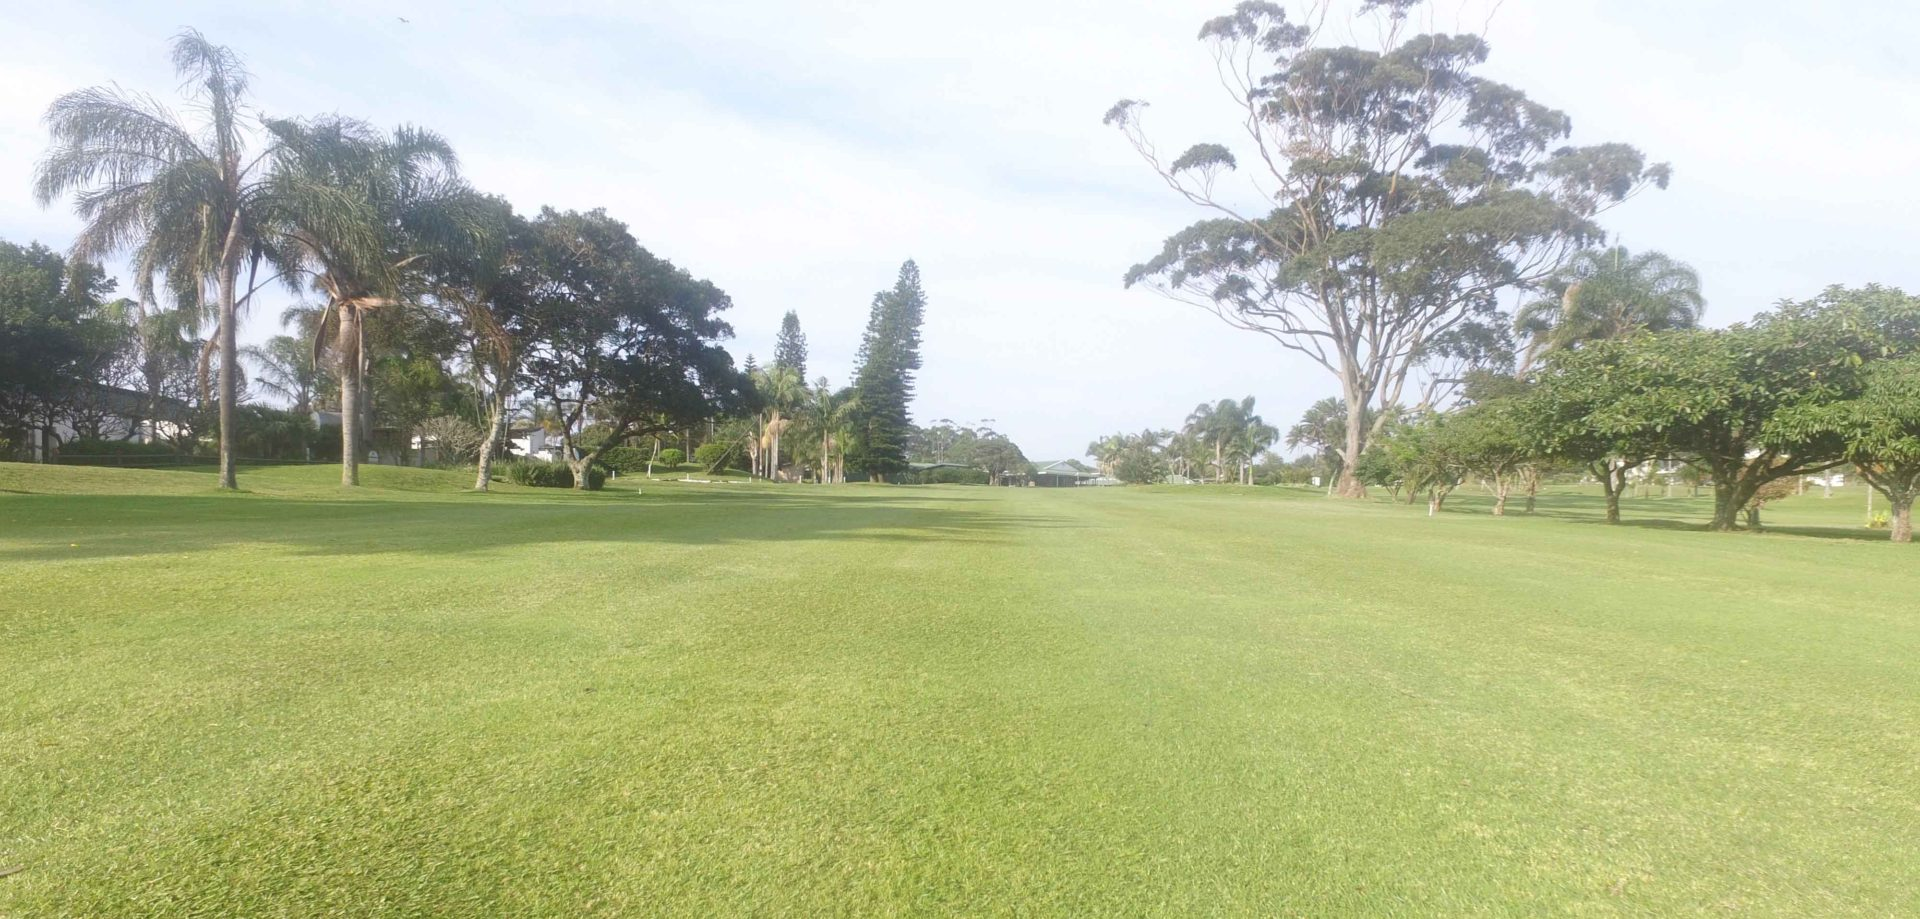 Margate Country Club offers Golf, Snooker, Event and Function Venues, Bridge Club and Line Dancing Lessons